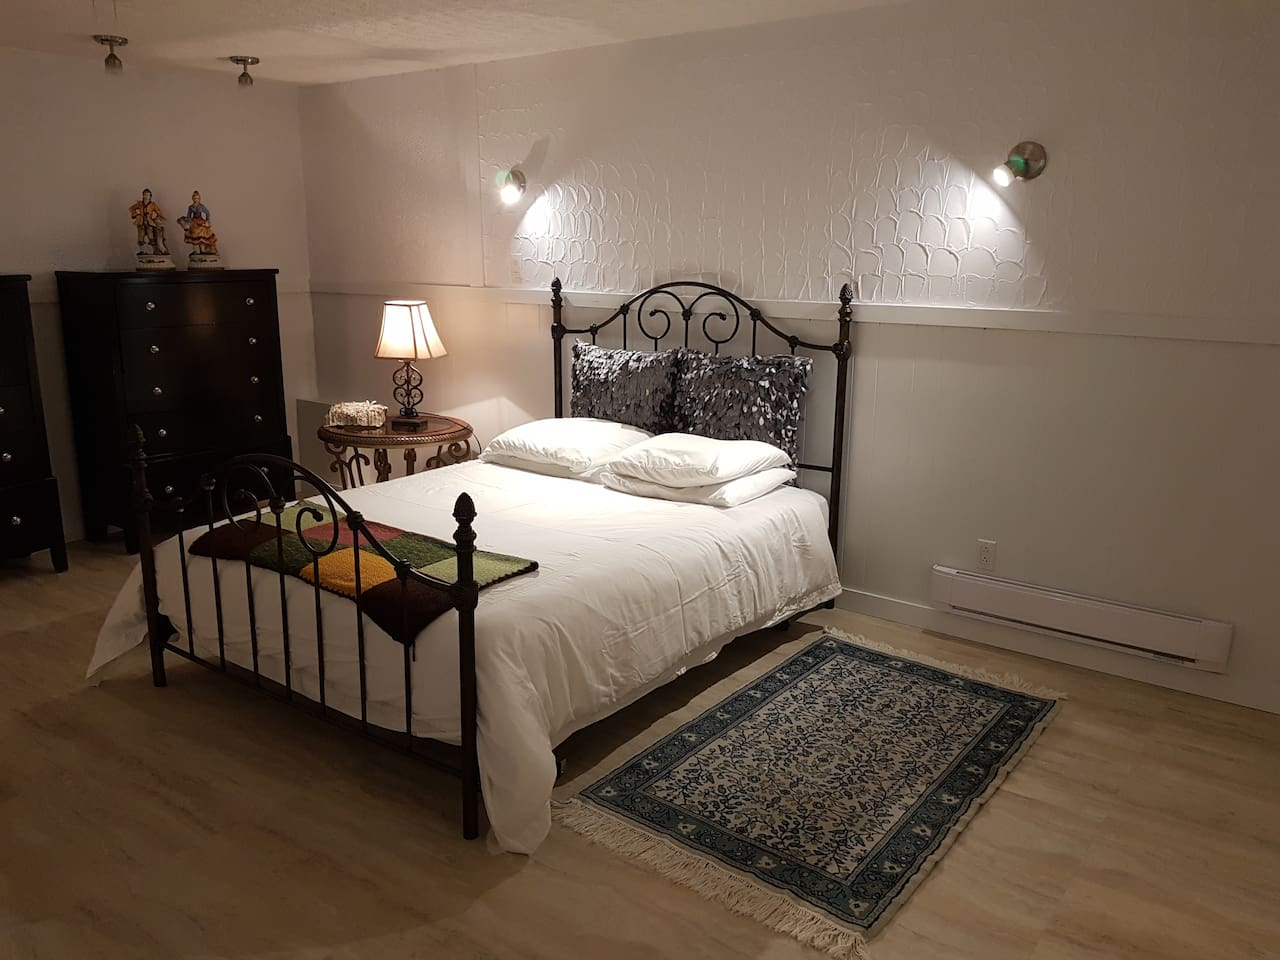 Lit Queen tres confortable. Draps, couette et oreillers de qualite. Extra couverture. Espaces de rangements et penderie pour vos vetements de soirees. Very comfortable Queen bed. Quality linens and pillows. Closet and drawer chest dressers.